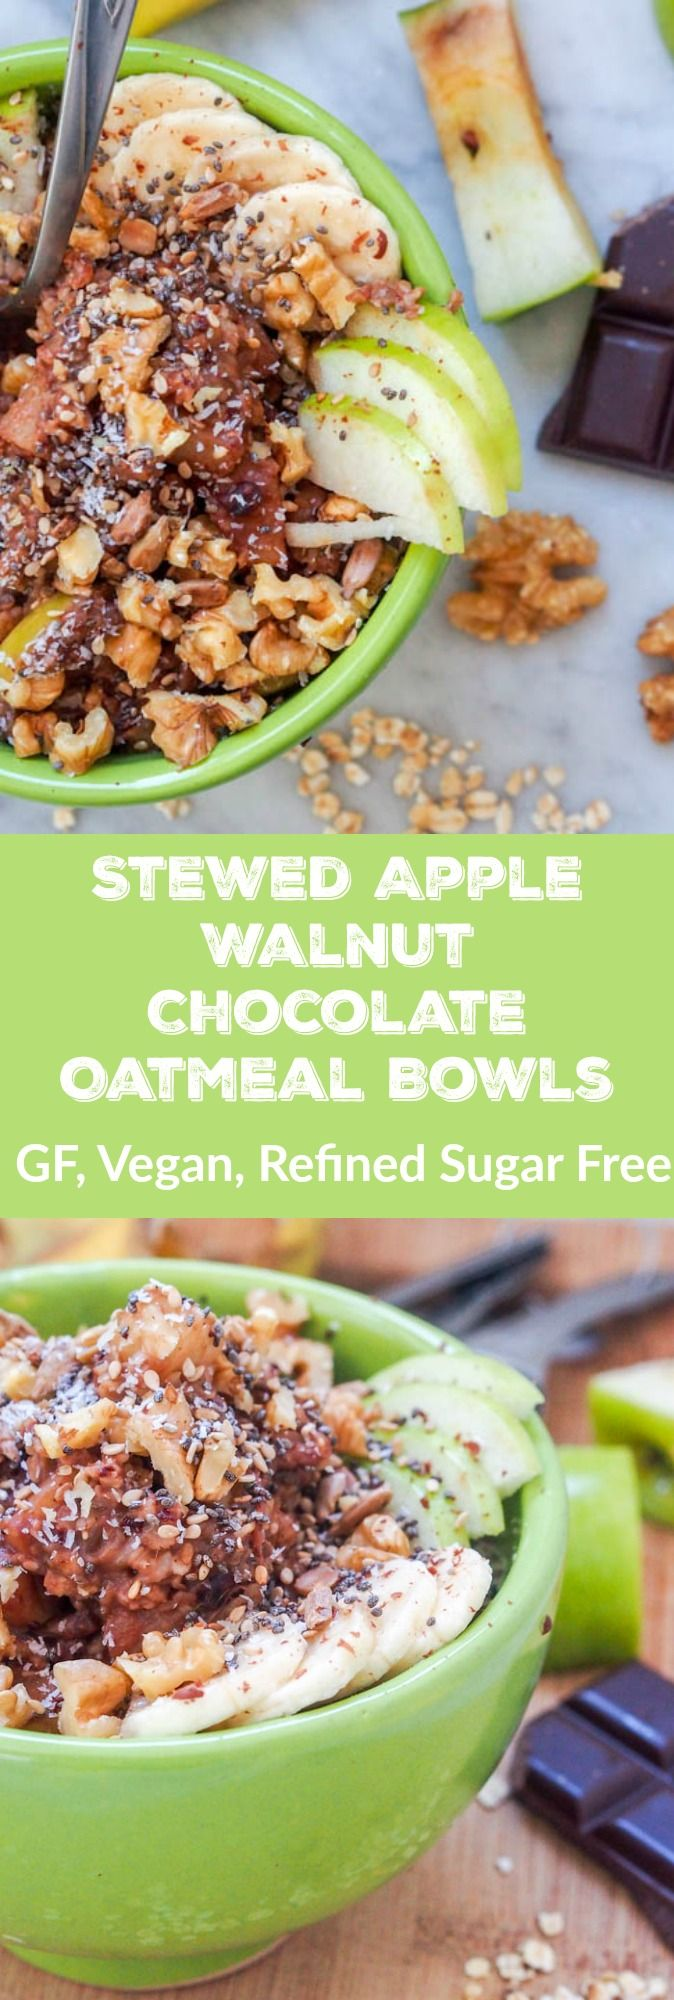 Want to feel like you're eating dessert for breakfast? Stewed Apple Walnut Chocolate Oatmeal is about to be your new favorite power breakfast. Stewed and caramelized diced apples and bananas mixed with oatmeal, chia, sesame, and sunflower seeds for a healthy and delicious sweet breakfast. Naturally sweetened with dark chocolate and dates and topped with crunchy walnuts. GF, Vegan and Refined Sugar Free. 8 g of protein and 11 g of fiber per serving.    avocadopesto.com